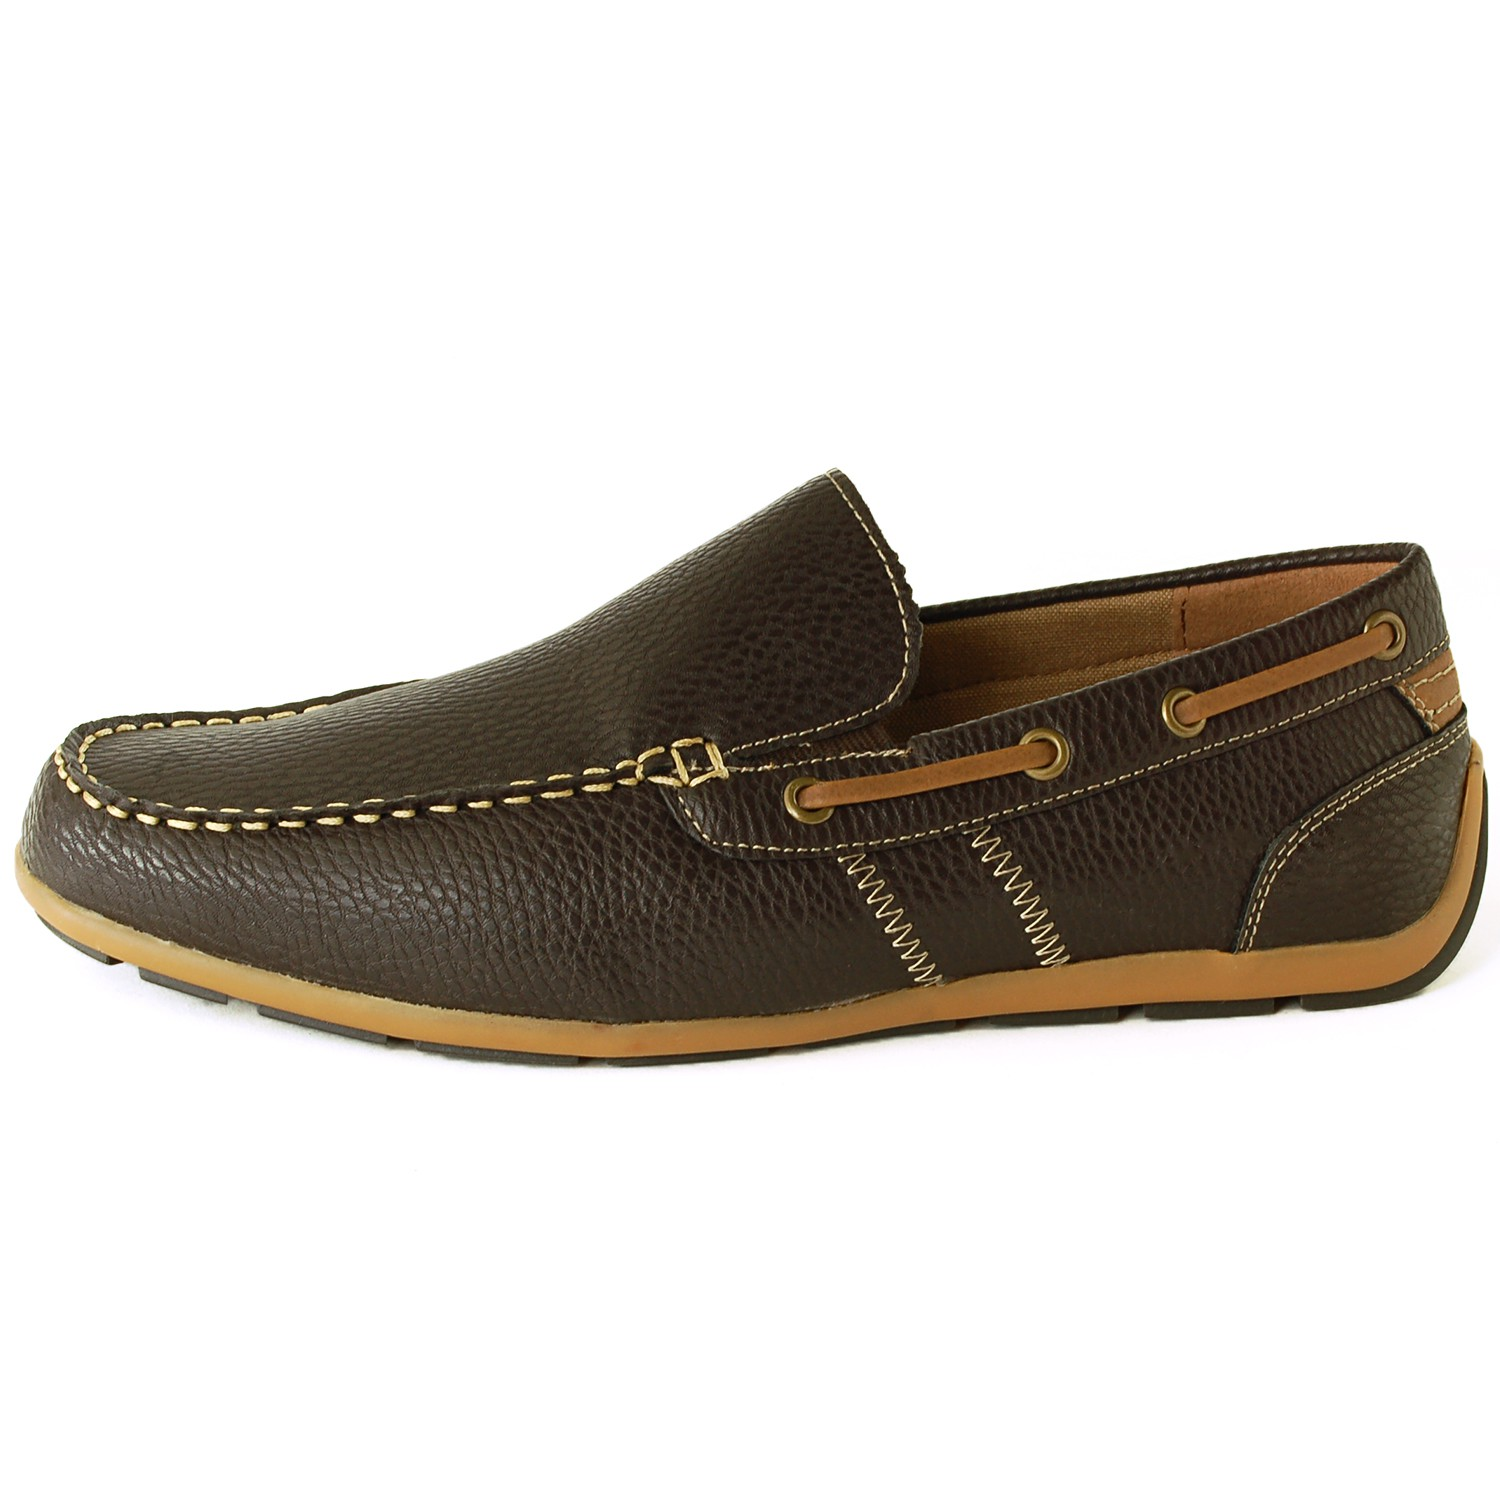 GBX Mens Casual Loafers Slip On Double Gore Moc Toe Boat ...